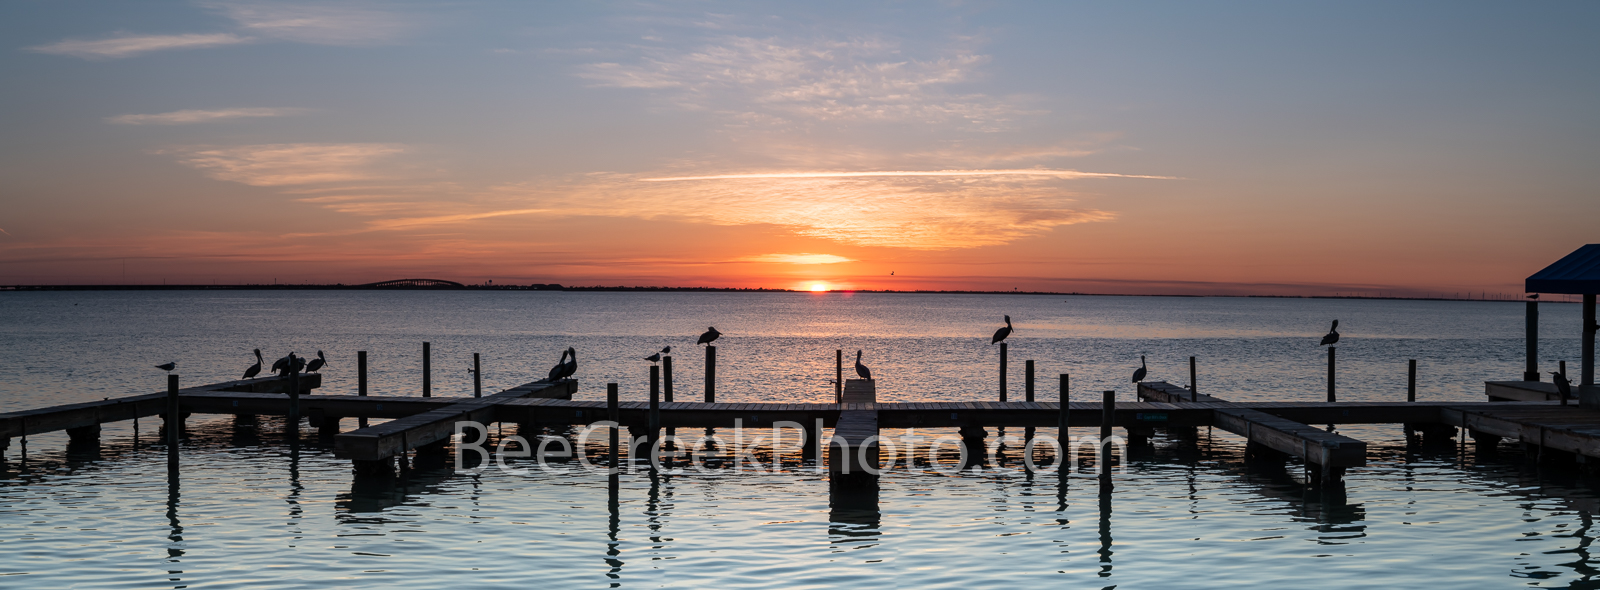 Pelican Sunset Pano - The pelicans and seagulls gather on these docks as the sun set in the distance for a wonderful coastal...